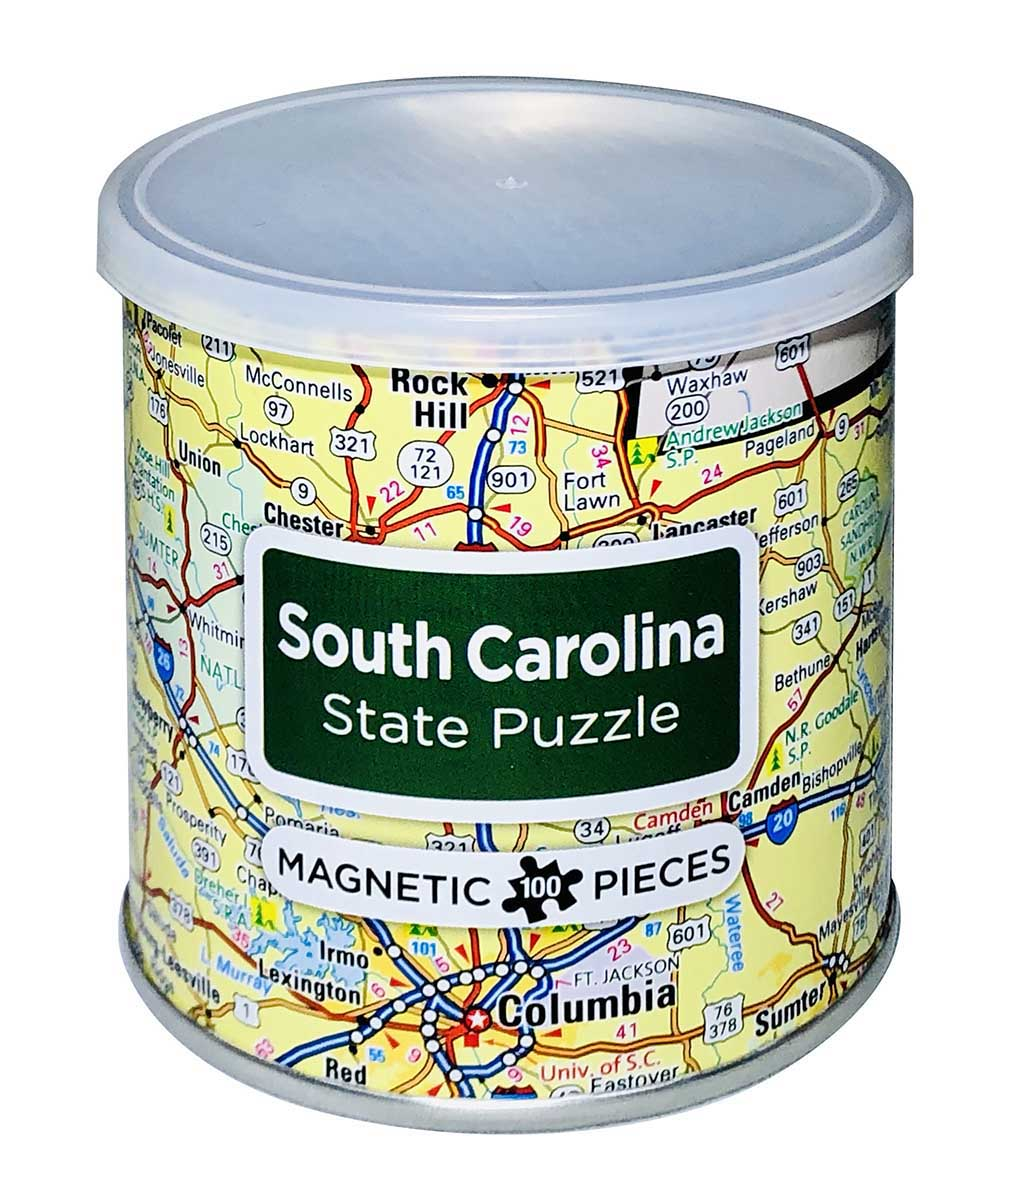 City Magnetic Puzzle South Carolina Cities Jigsaw Puzzle